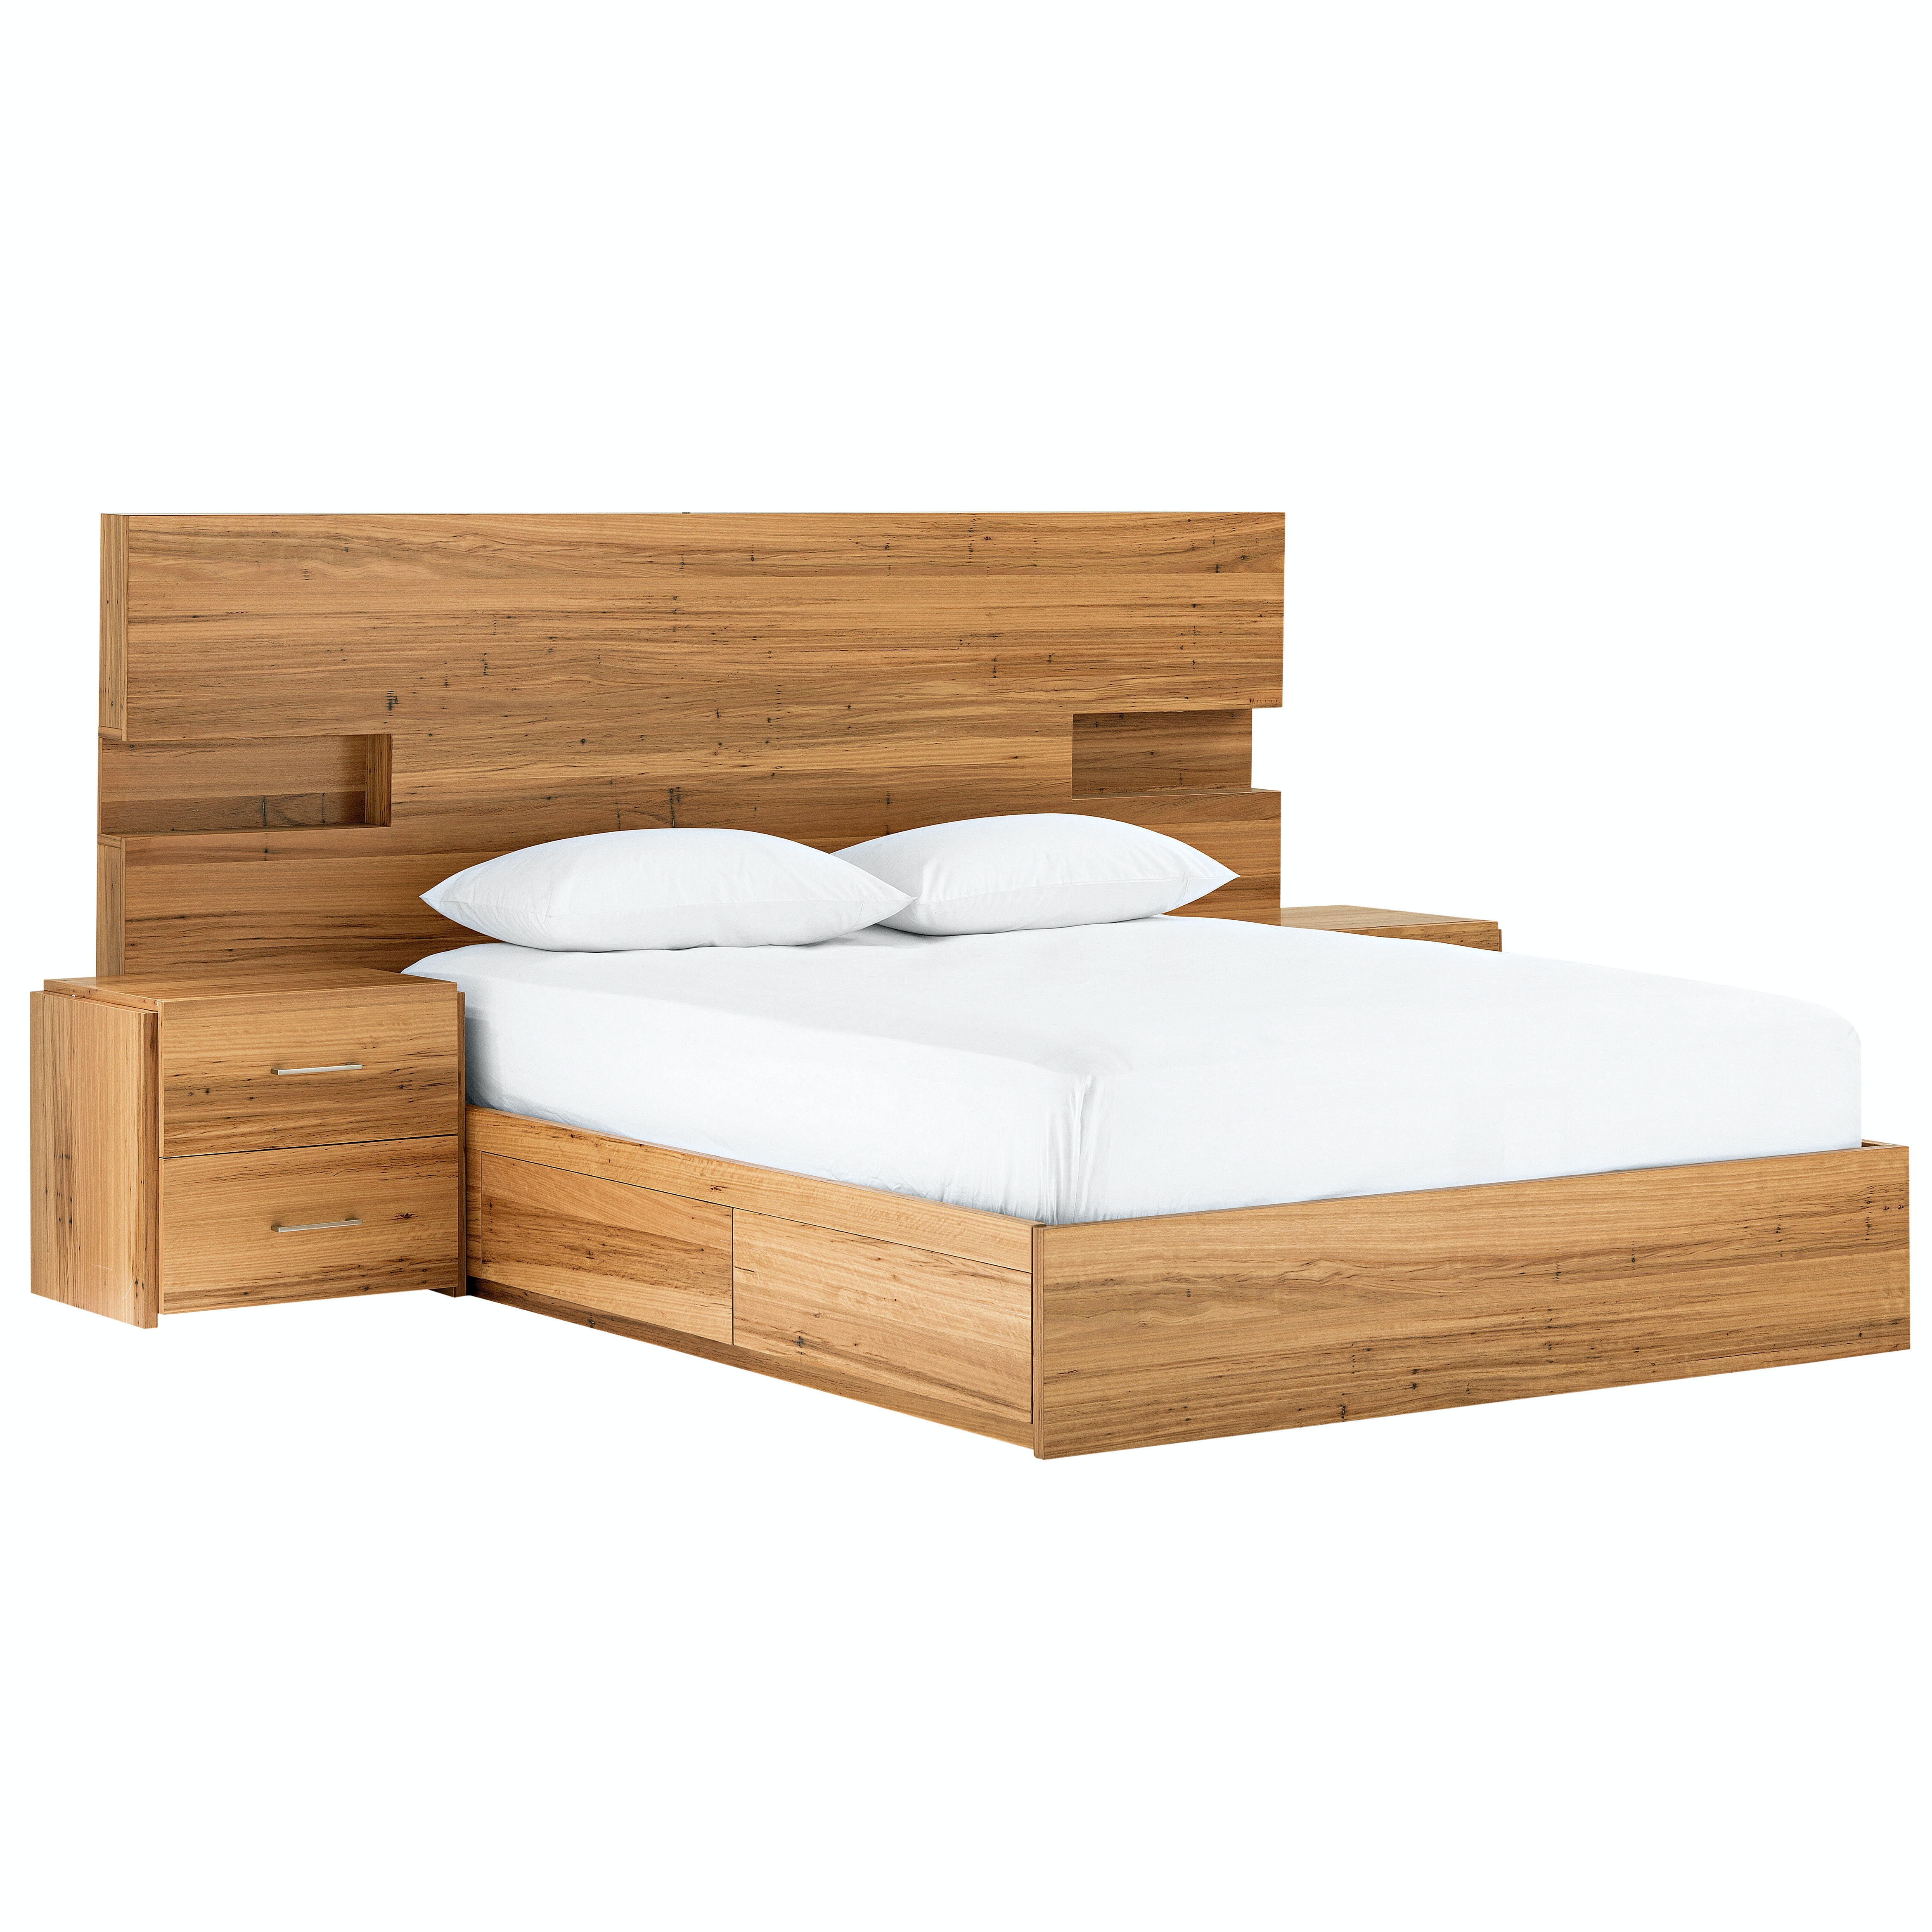 Amelie Bed Base with 4-Drawers